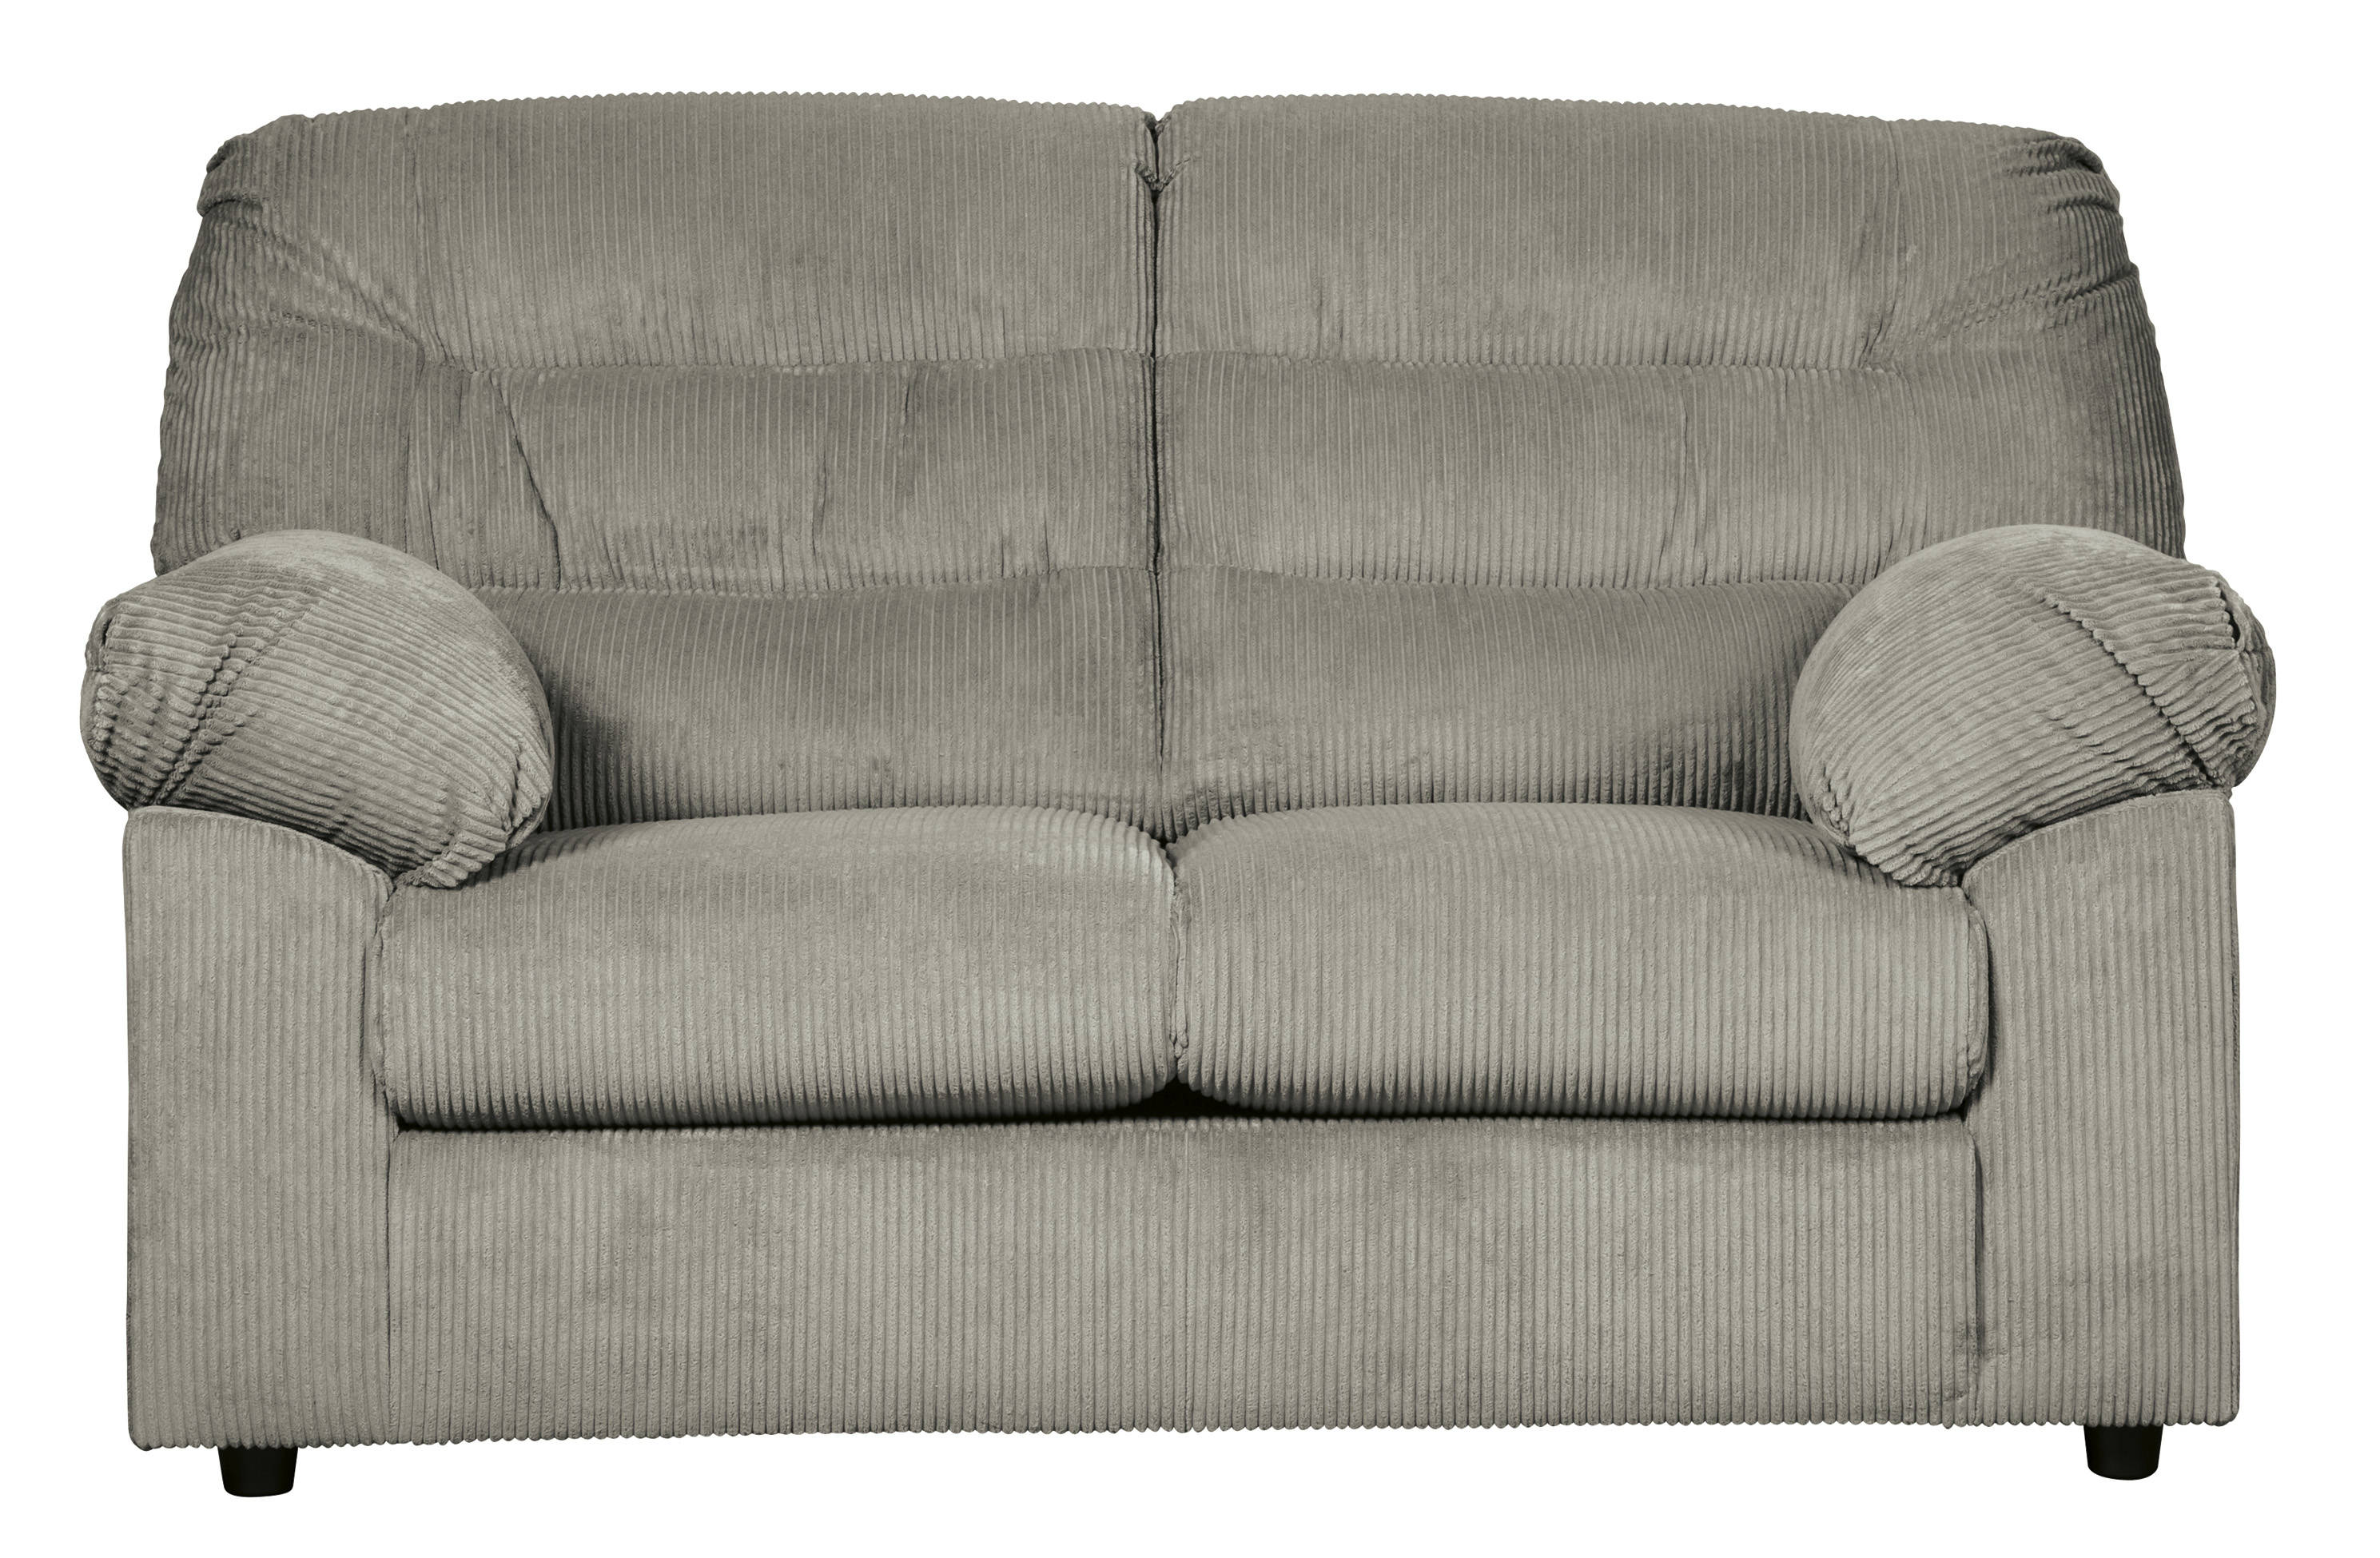 Surprising Ashley Furniture Gosnell Gray Loveseat The Classy Home Beutiful Home Inspiration Cosmmahrainfo